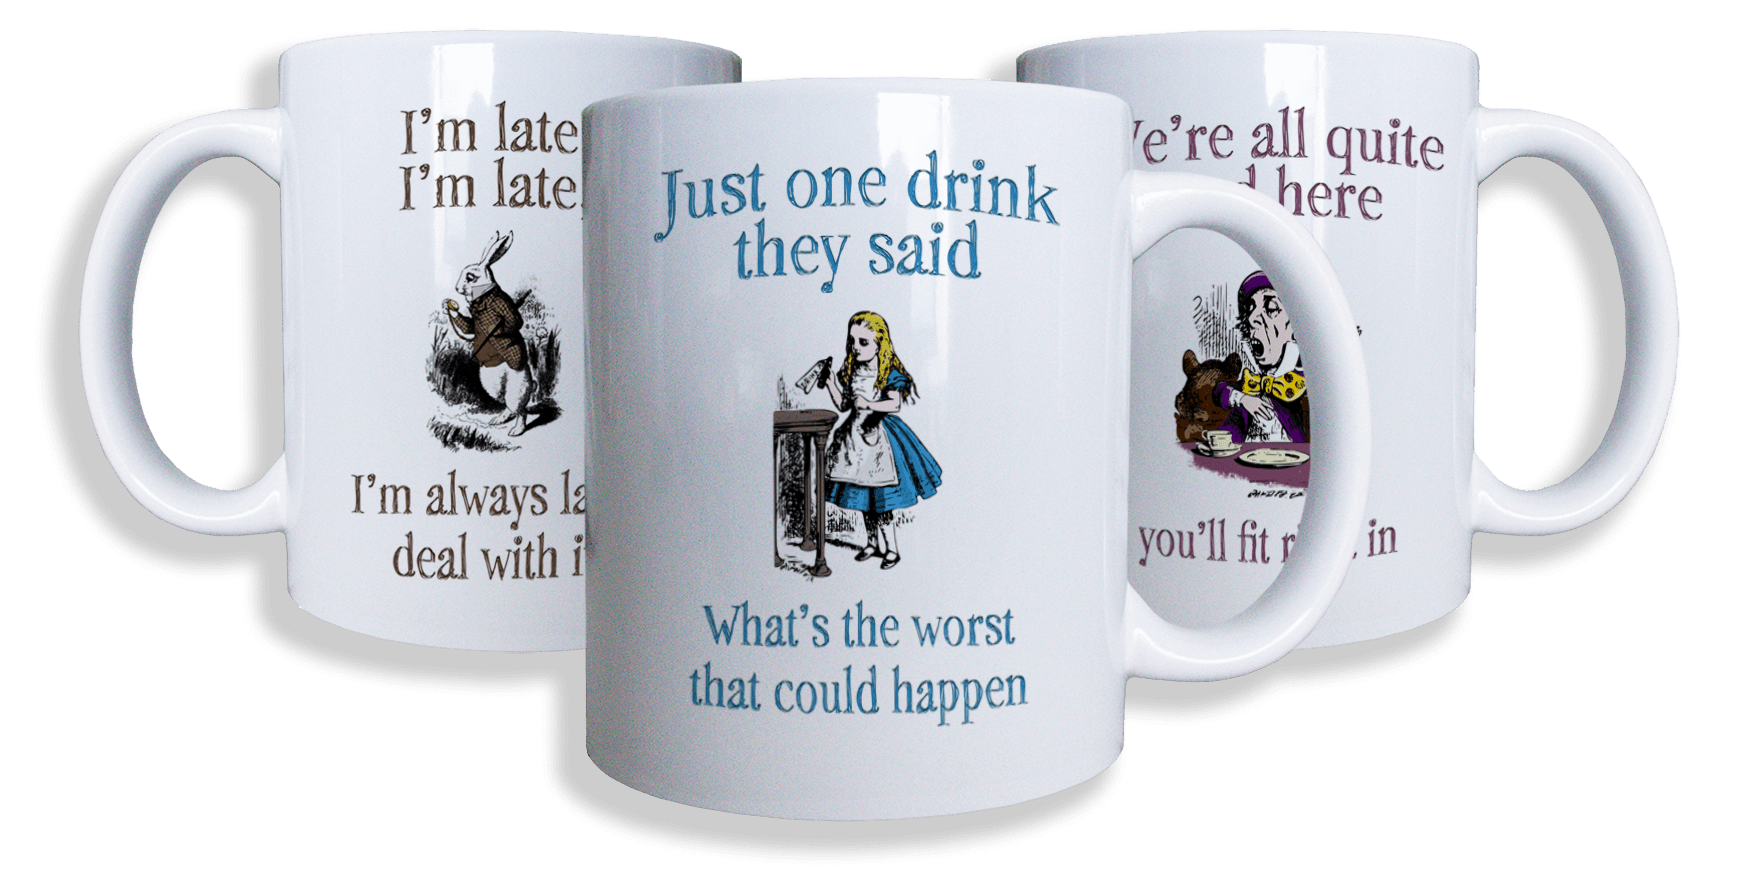 Three white ceramic mugs from our Alice in wonderland collection. One with Alice and the words, Just one drink they said, what's the worse that could happen? The second has The mad hatter on it and the words, we're all quite made here, you'll fit right in. The last mug has the March hare on it and the words I'm late, I'm late. I'm always late, deal with it.